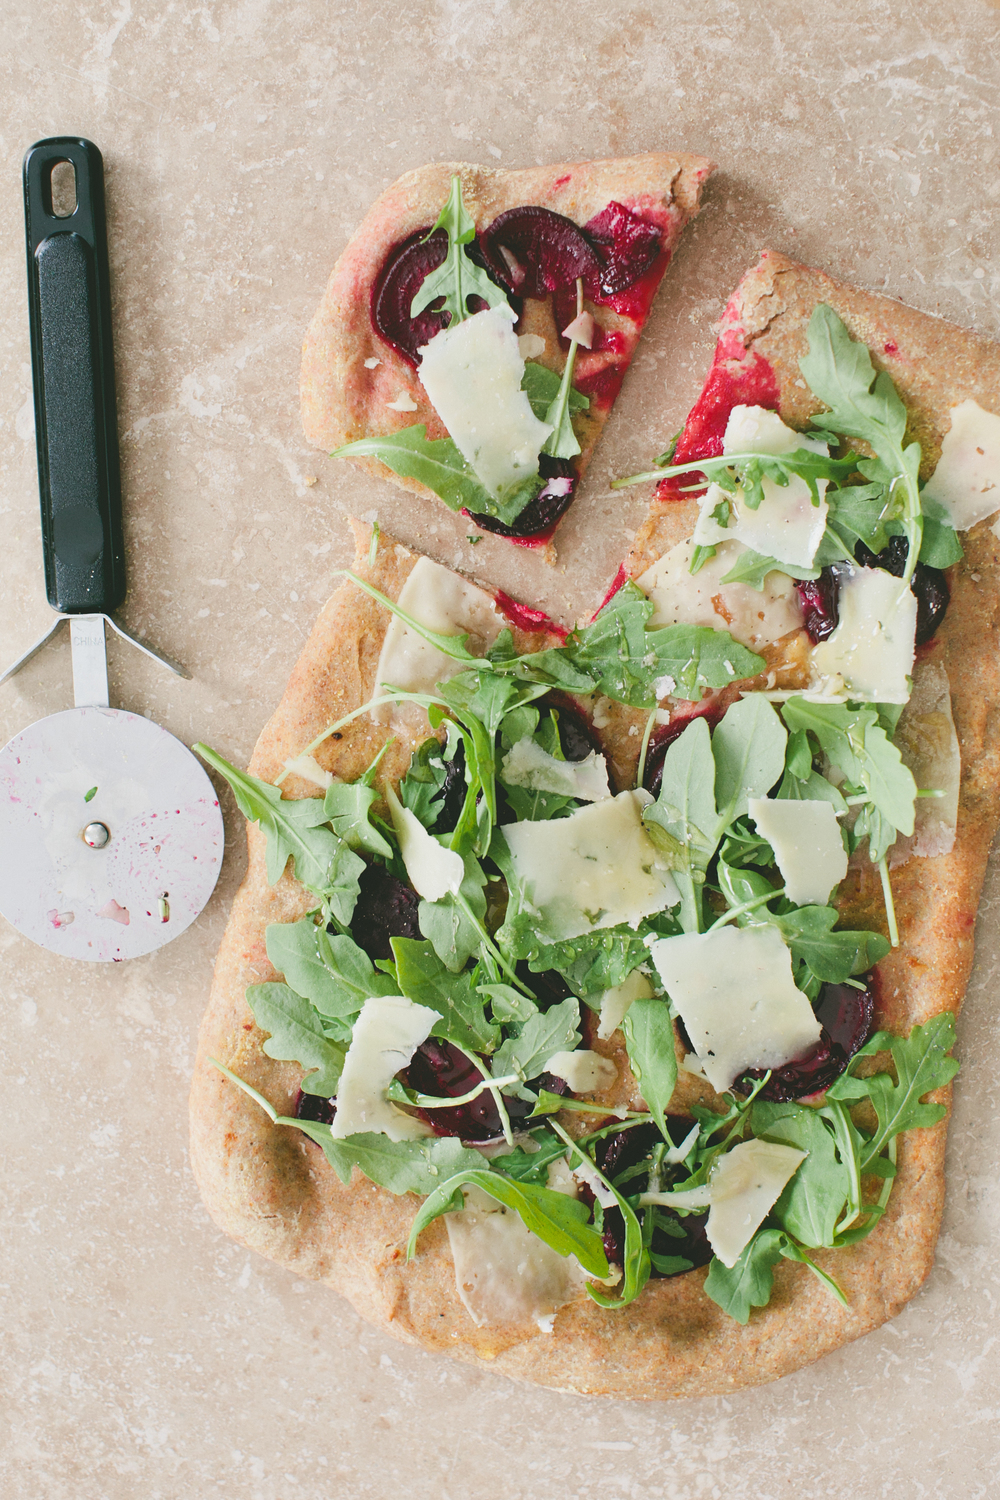 Whole Wheat Pizza with Beets, Arugula, and Pecorino